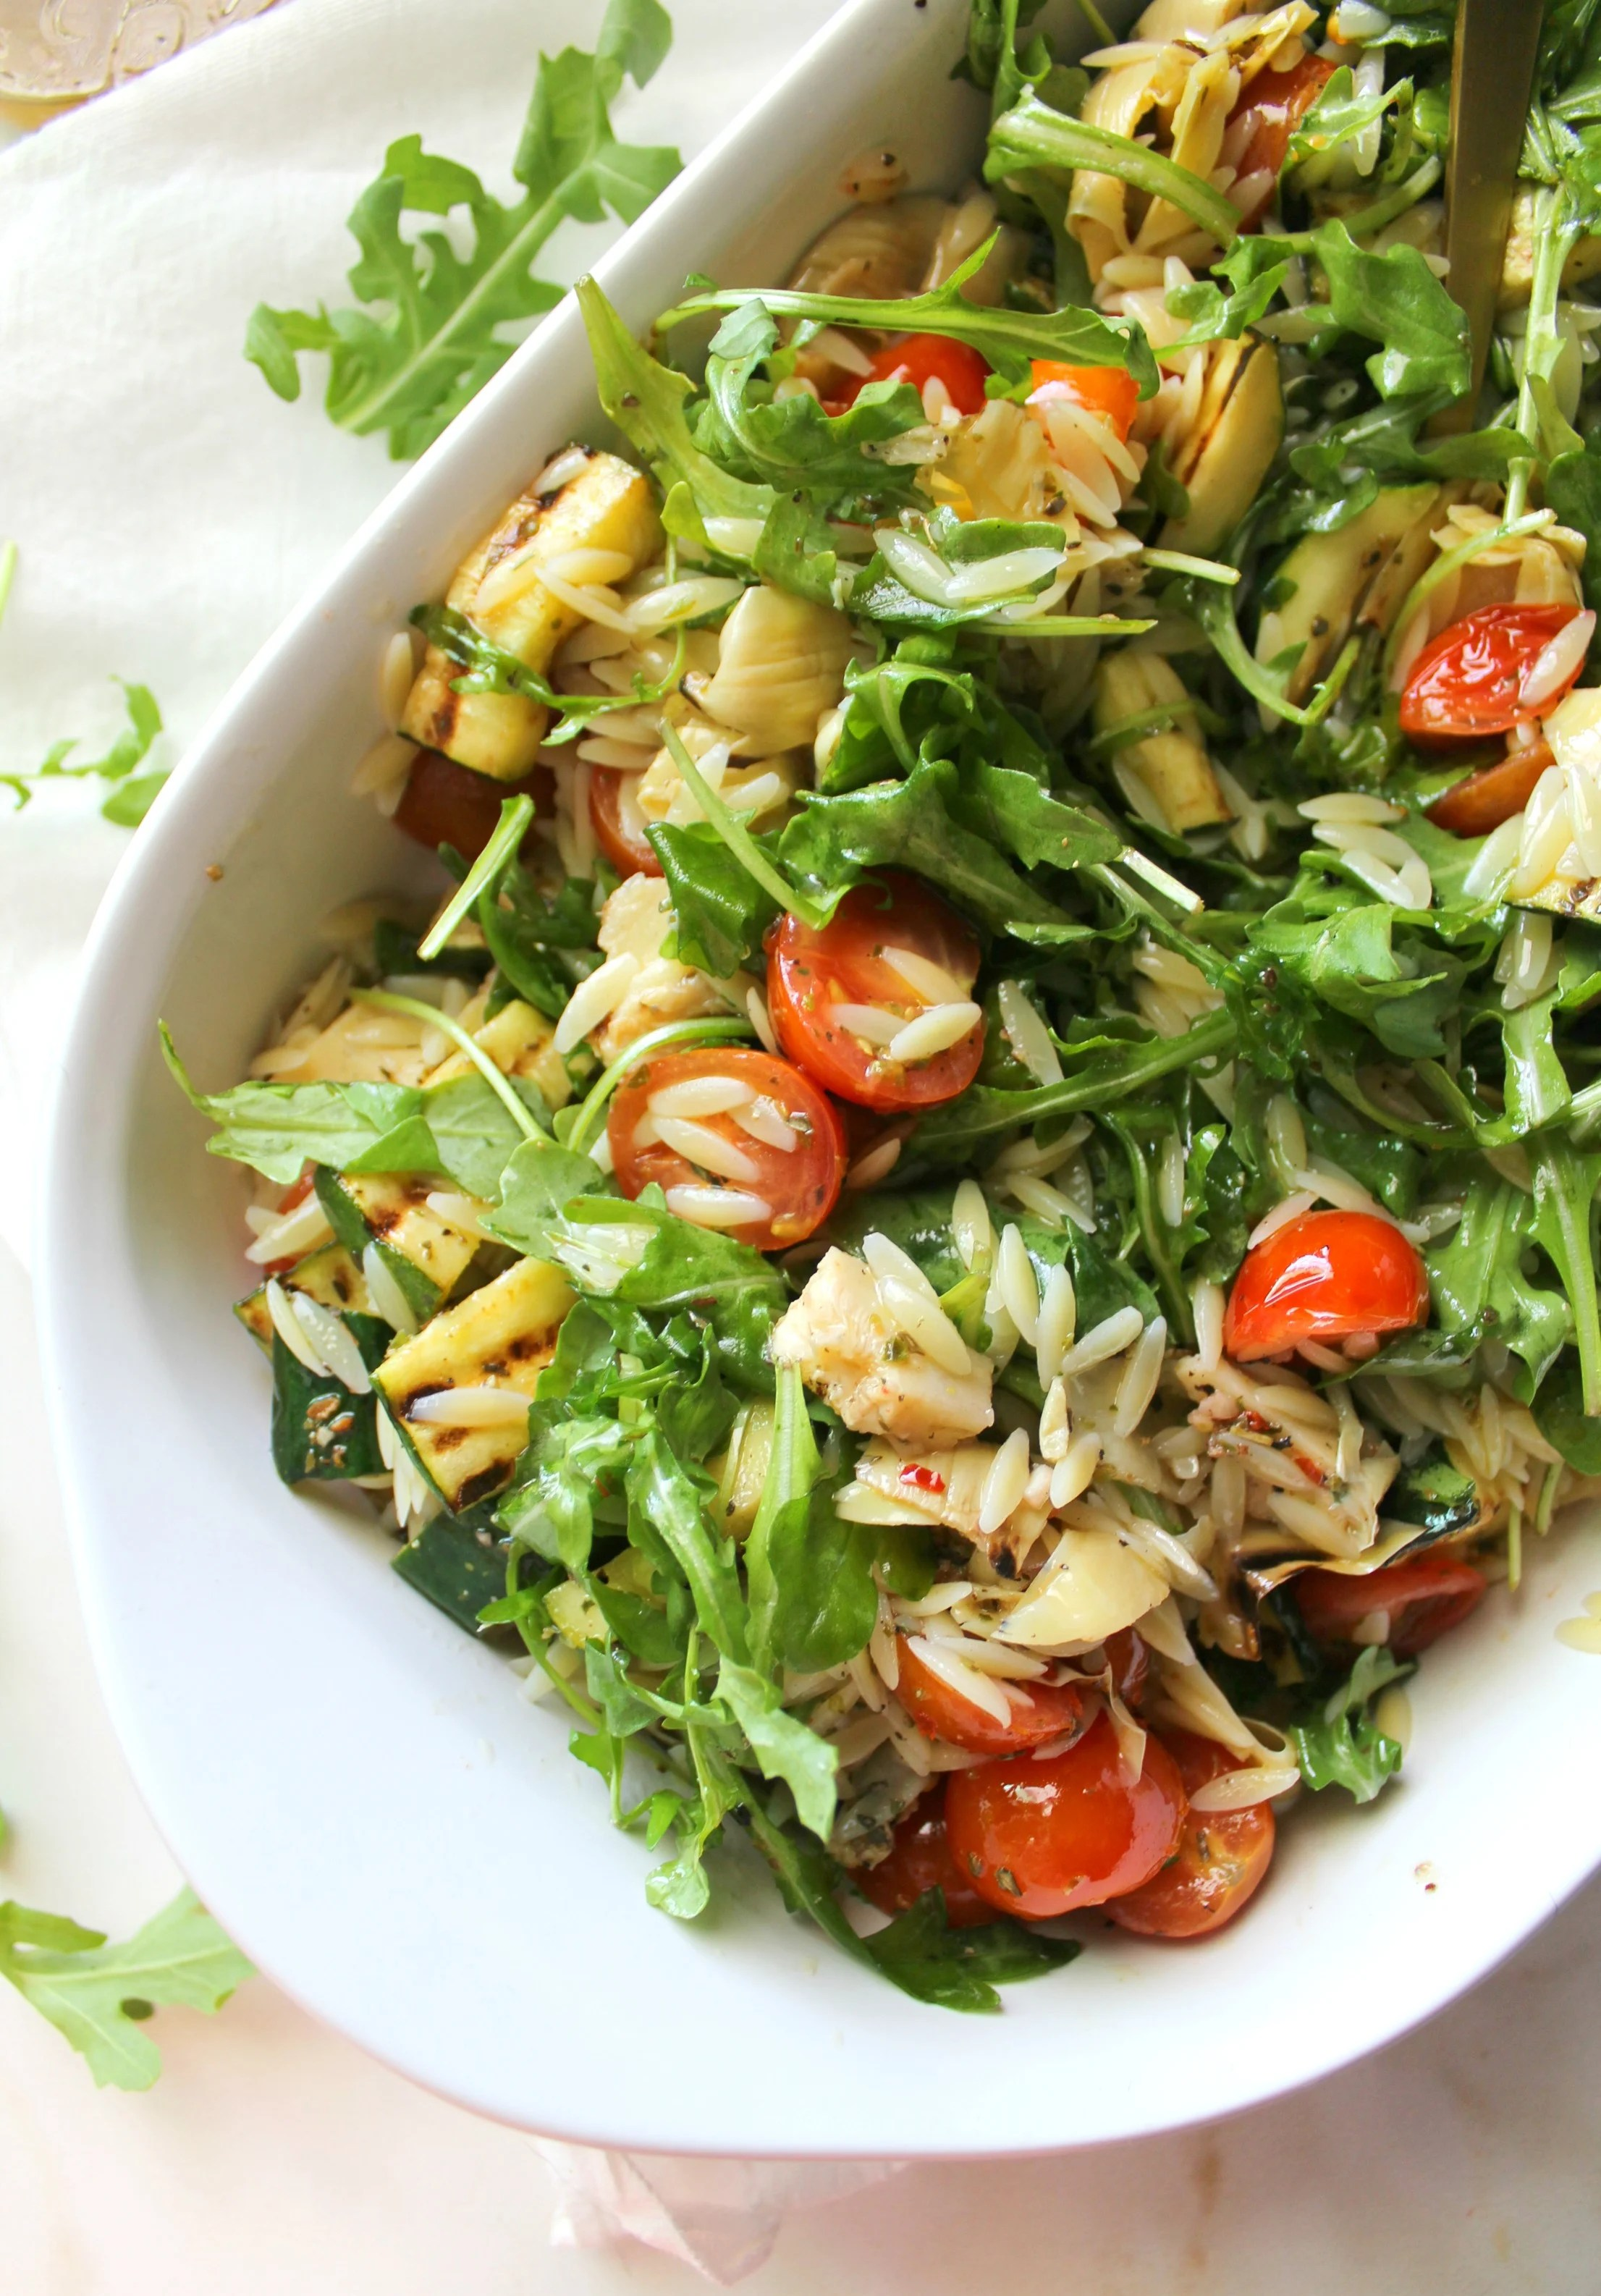 Vegan Orzo Pasta Salad with Grilled Veggies | ThisSavoryVegan.com